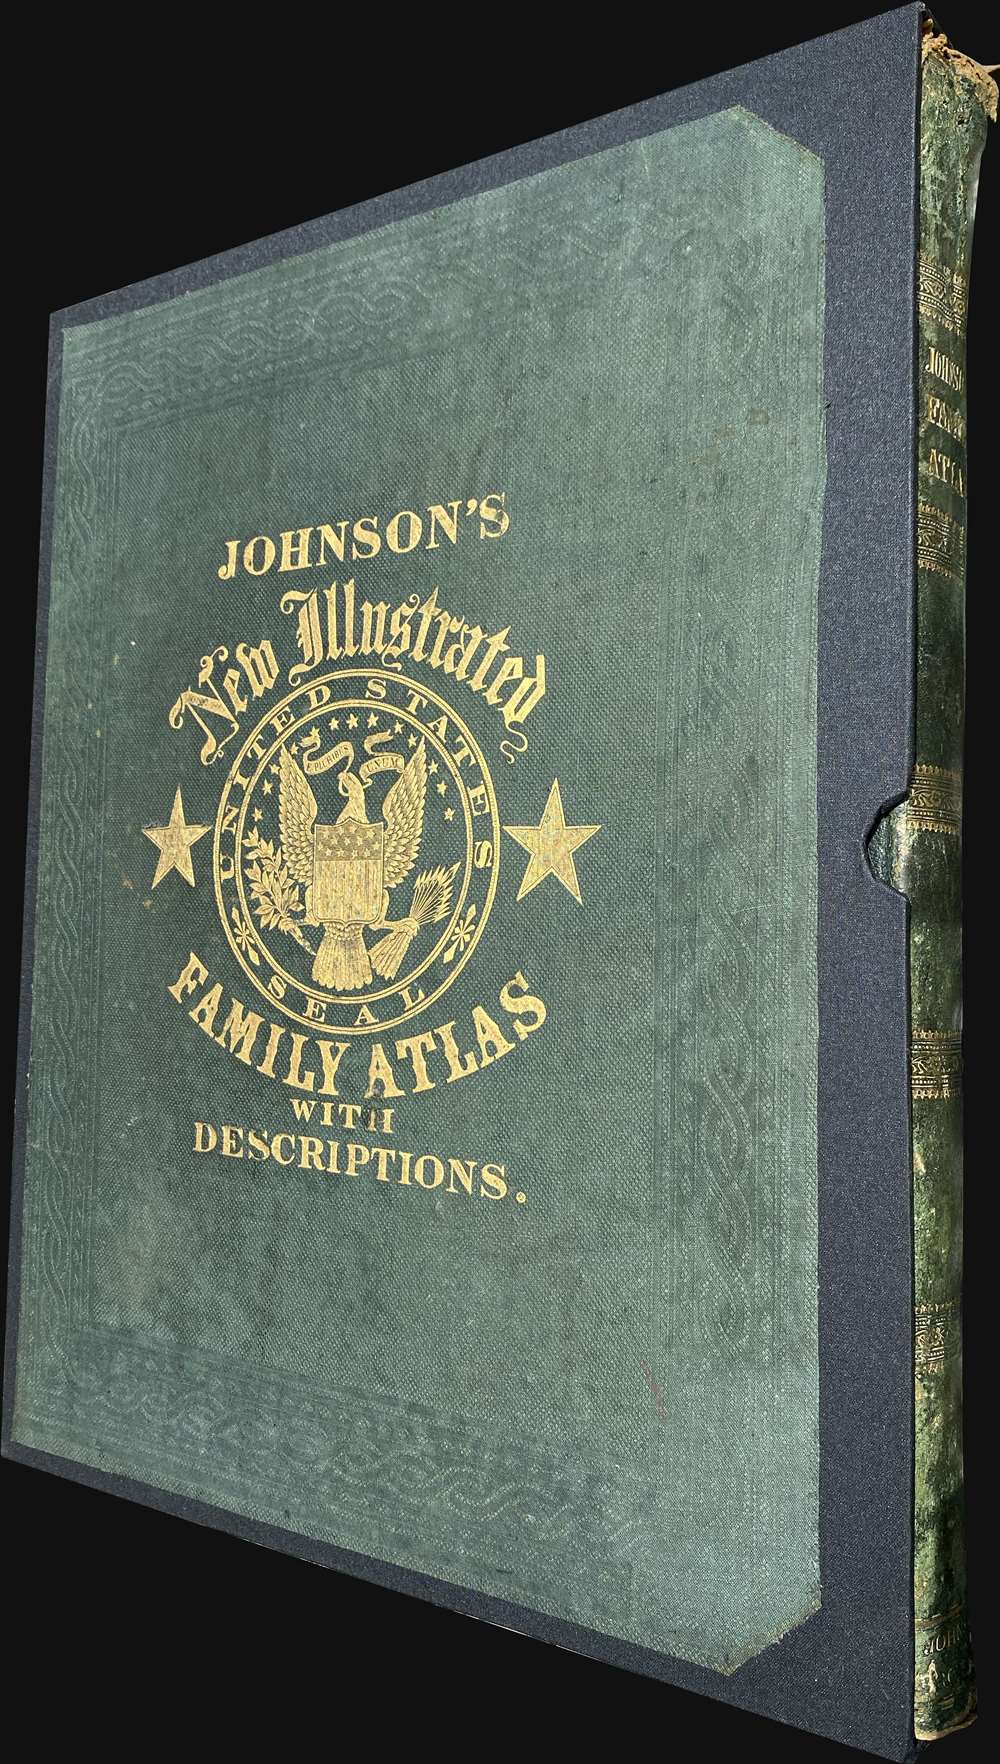 Johnson's New Illustrated (Steel Plate) Family Atlas - Alternate View 1